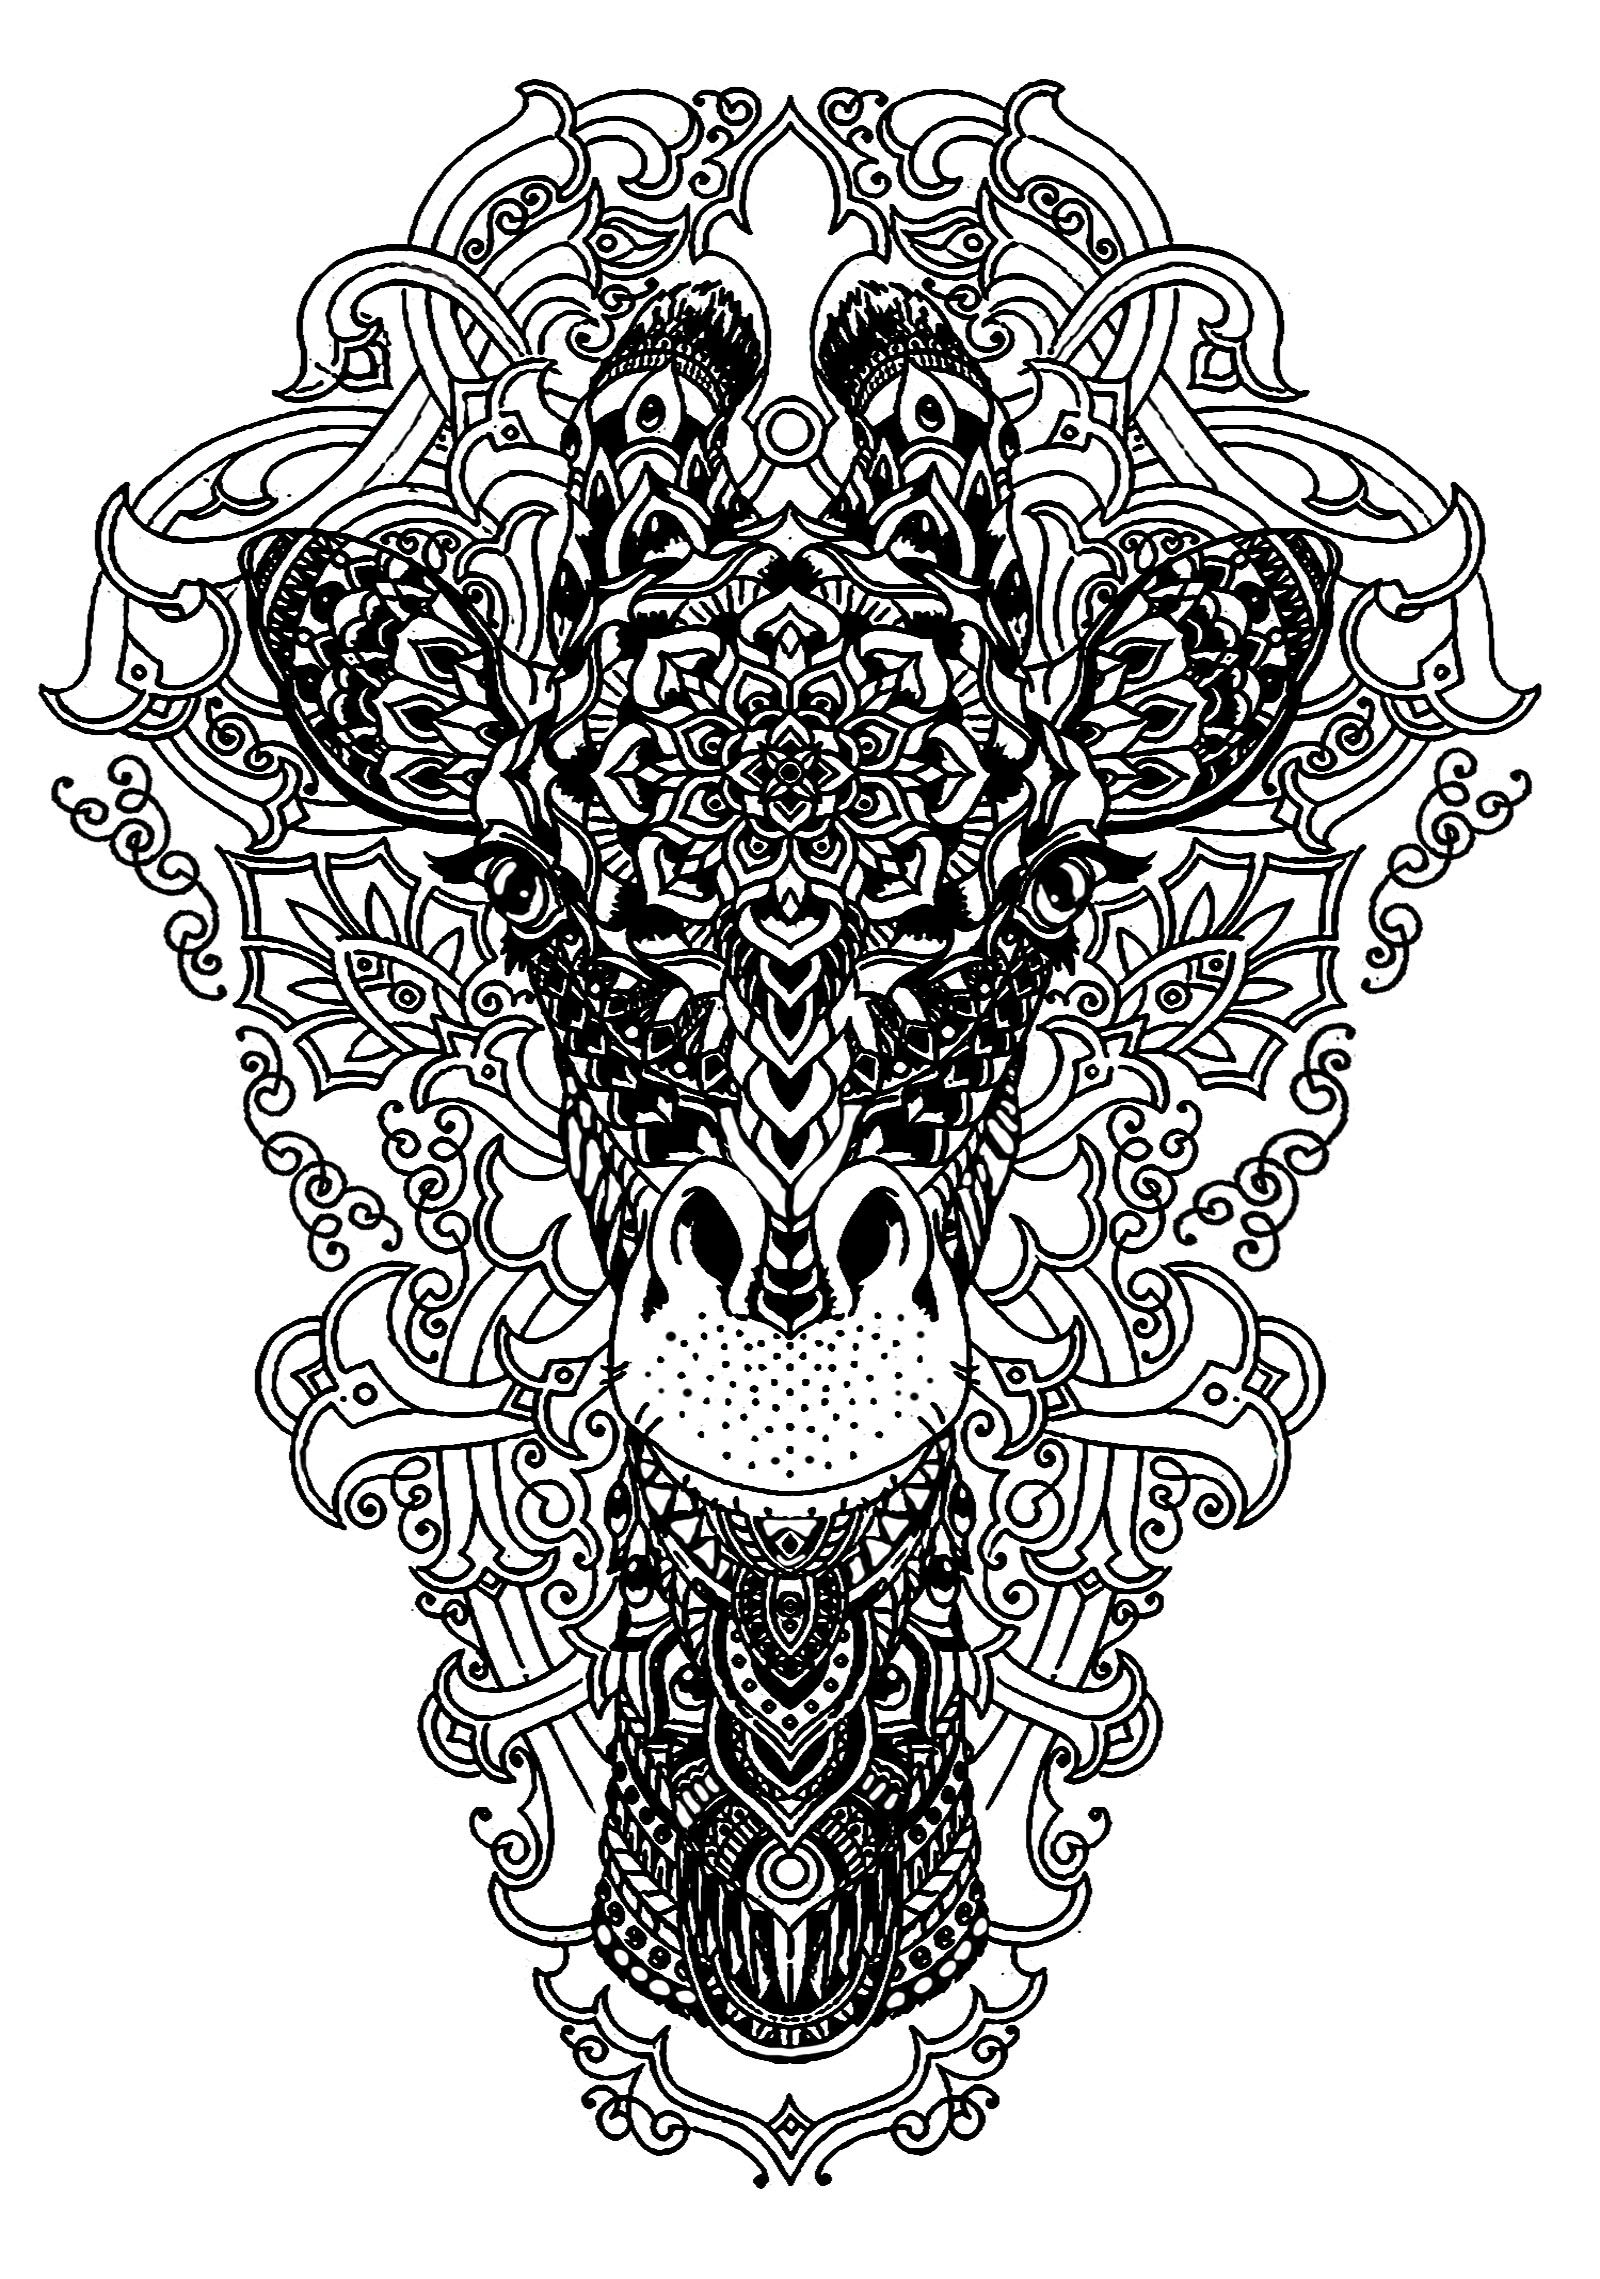 head of a giraffe giraffes coloring pages for adults justcolor - Giraffes Coloring Pages